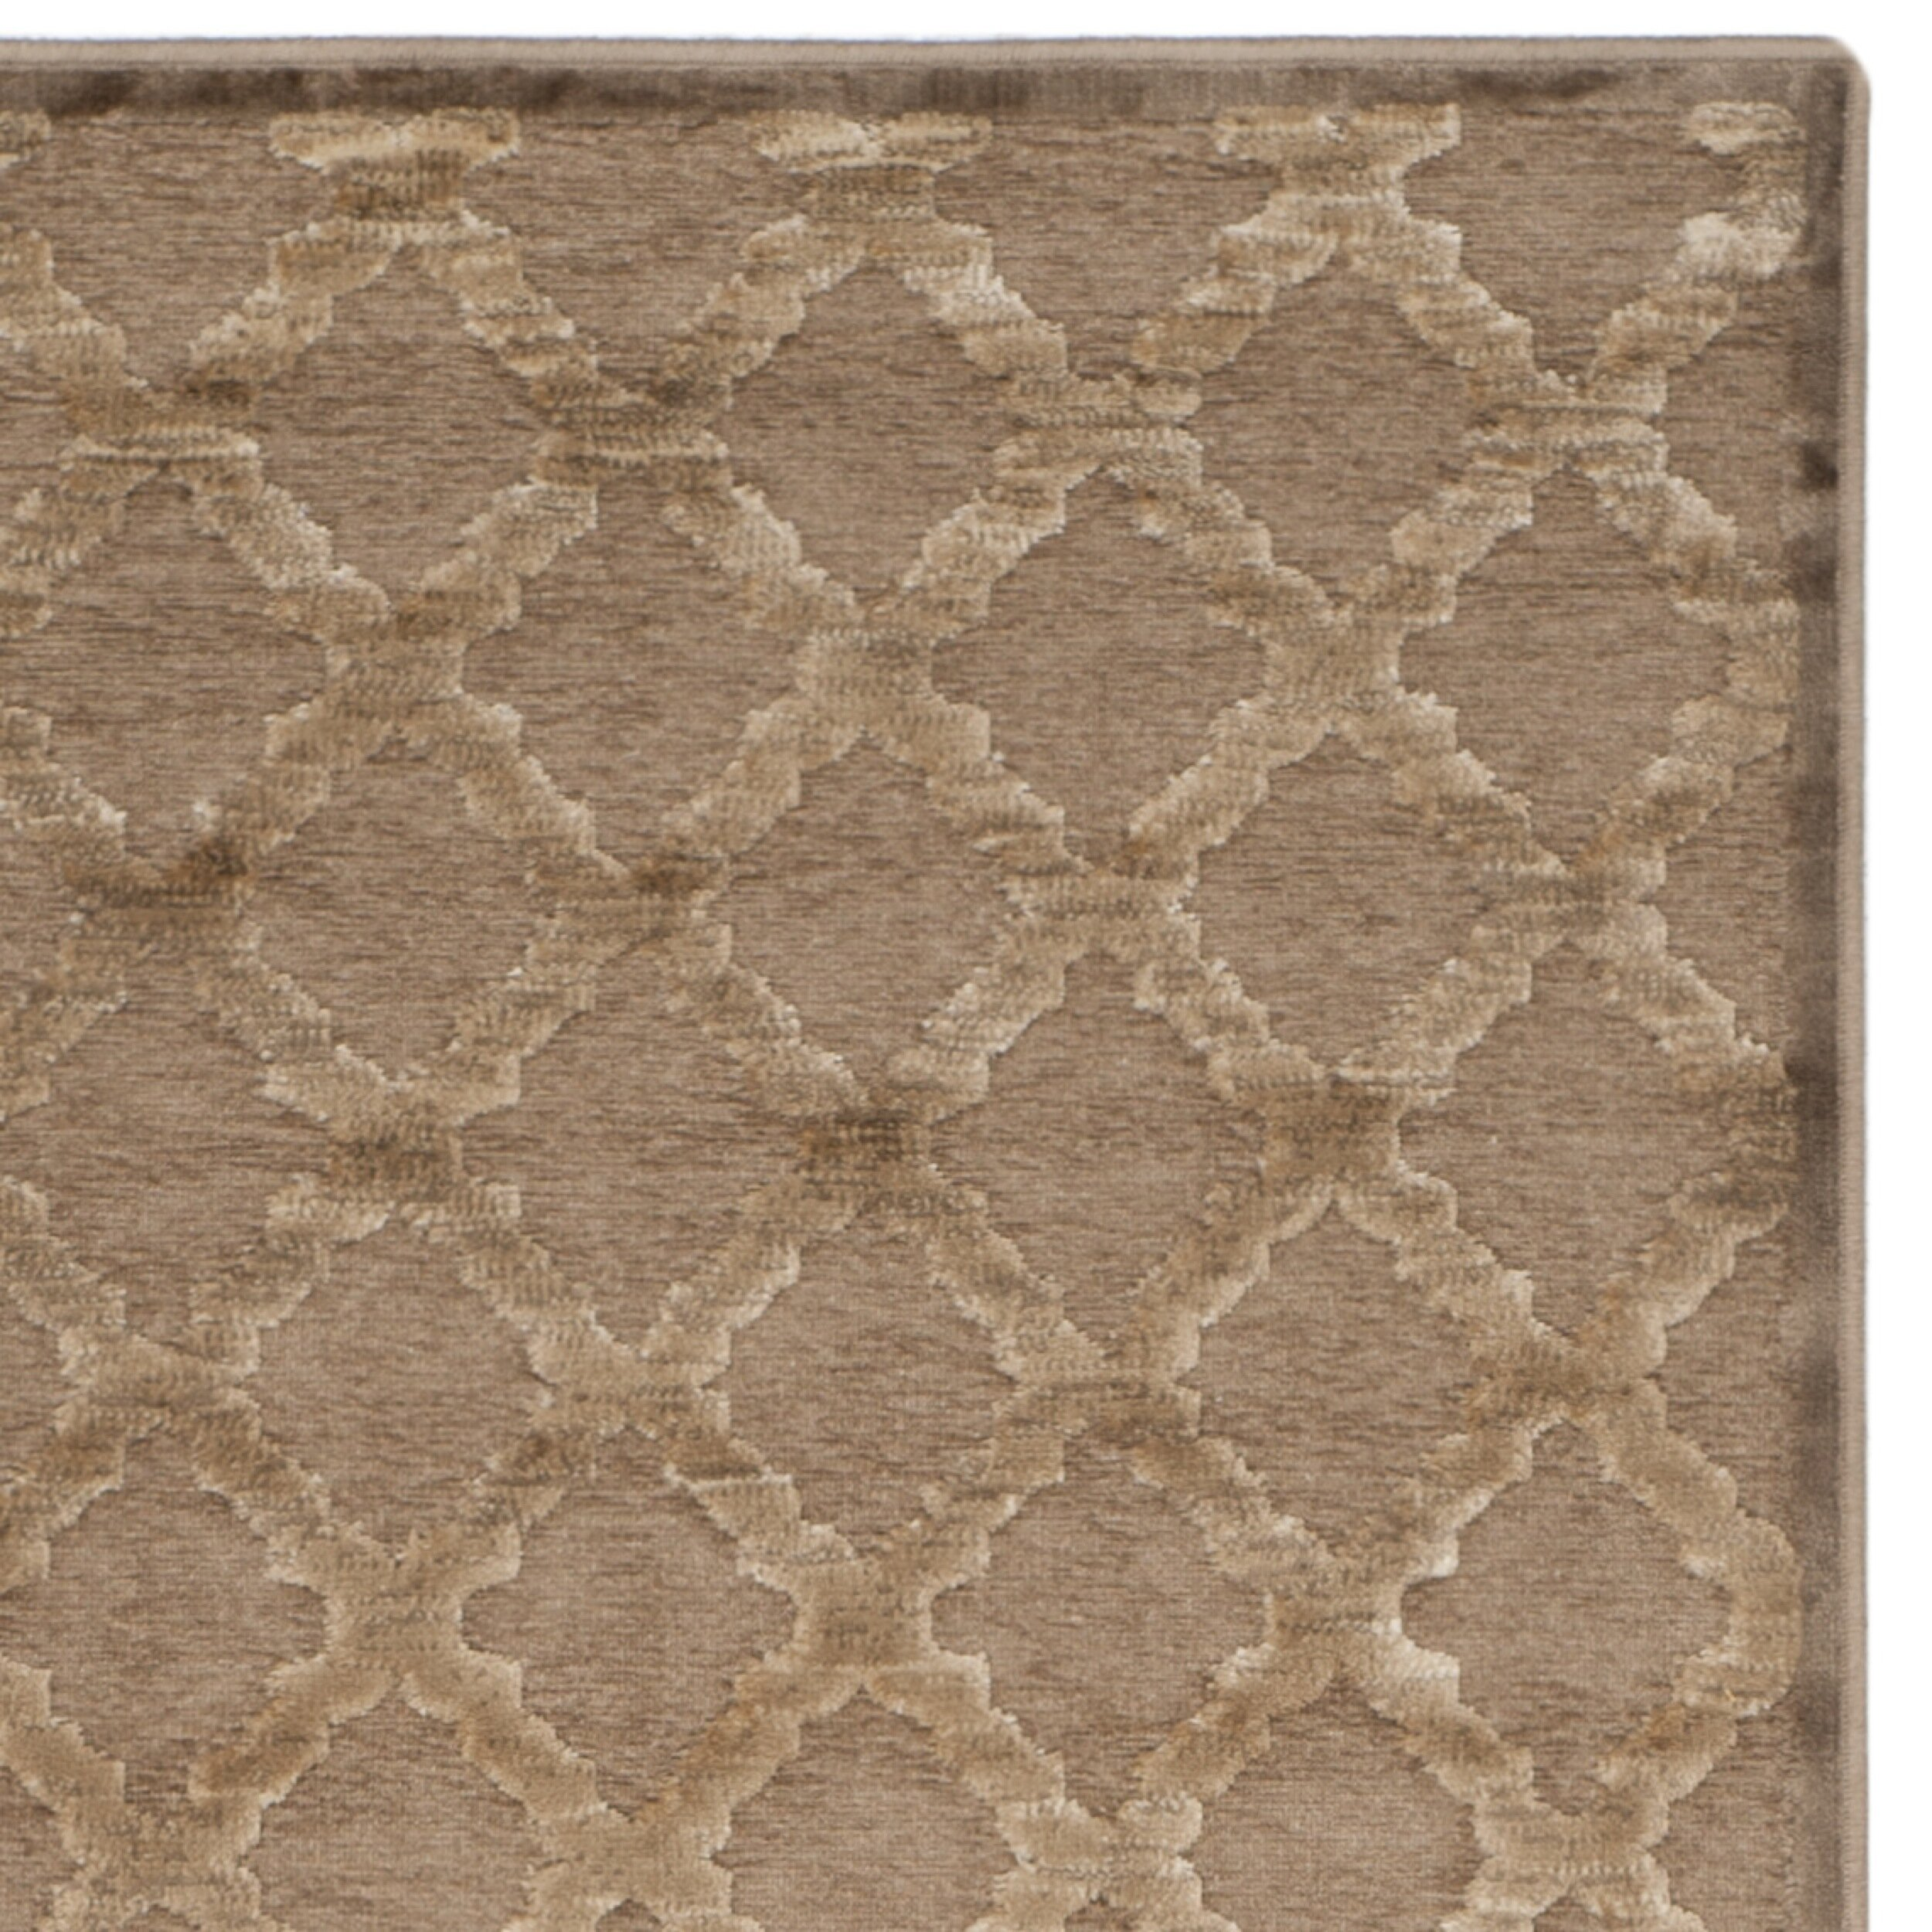 House Of Hampton Berloz Camel Area Rug & Reviews